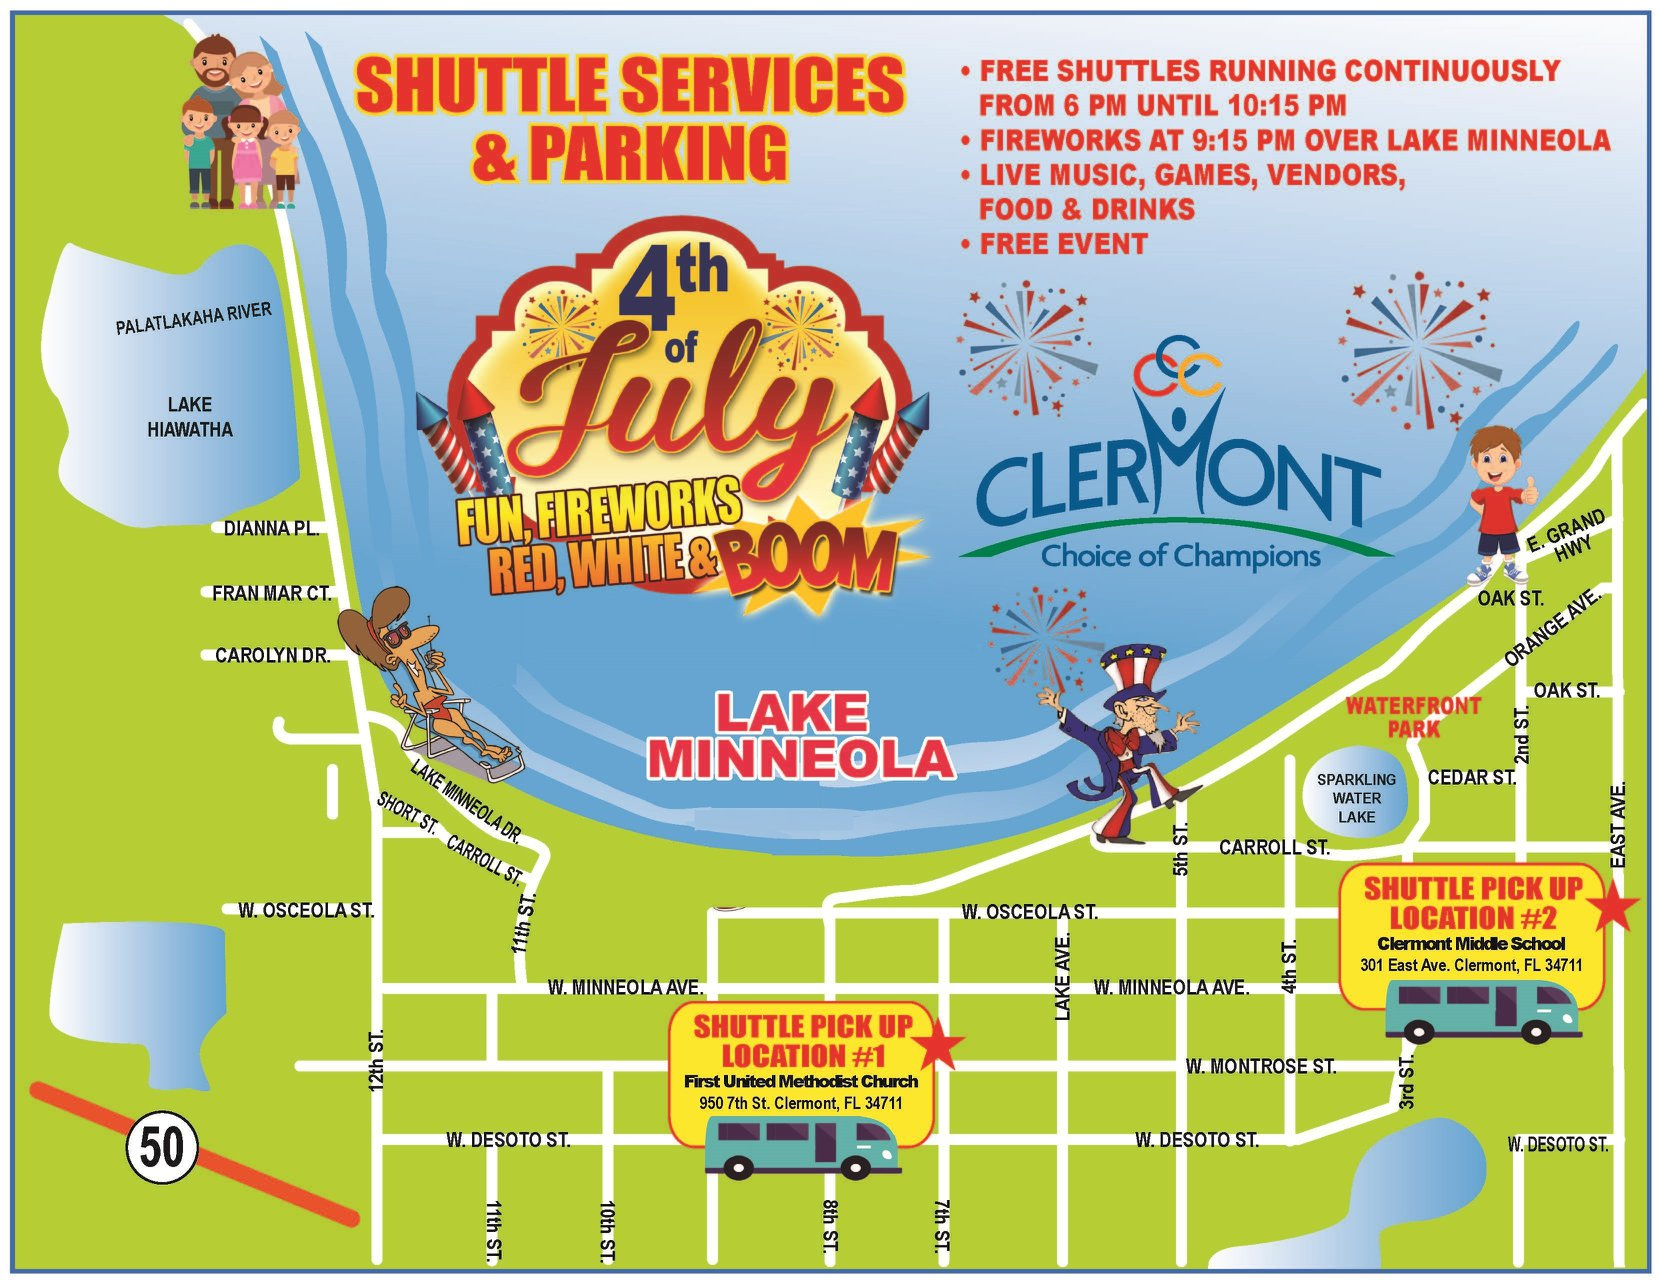 shuttle map showing pickup and dropoff locations in Downtown Clermont for the July 4, 2019 event